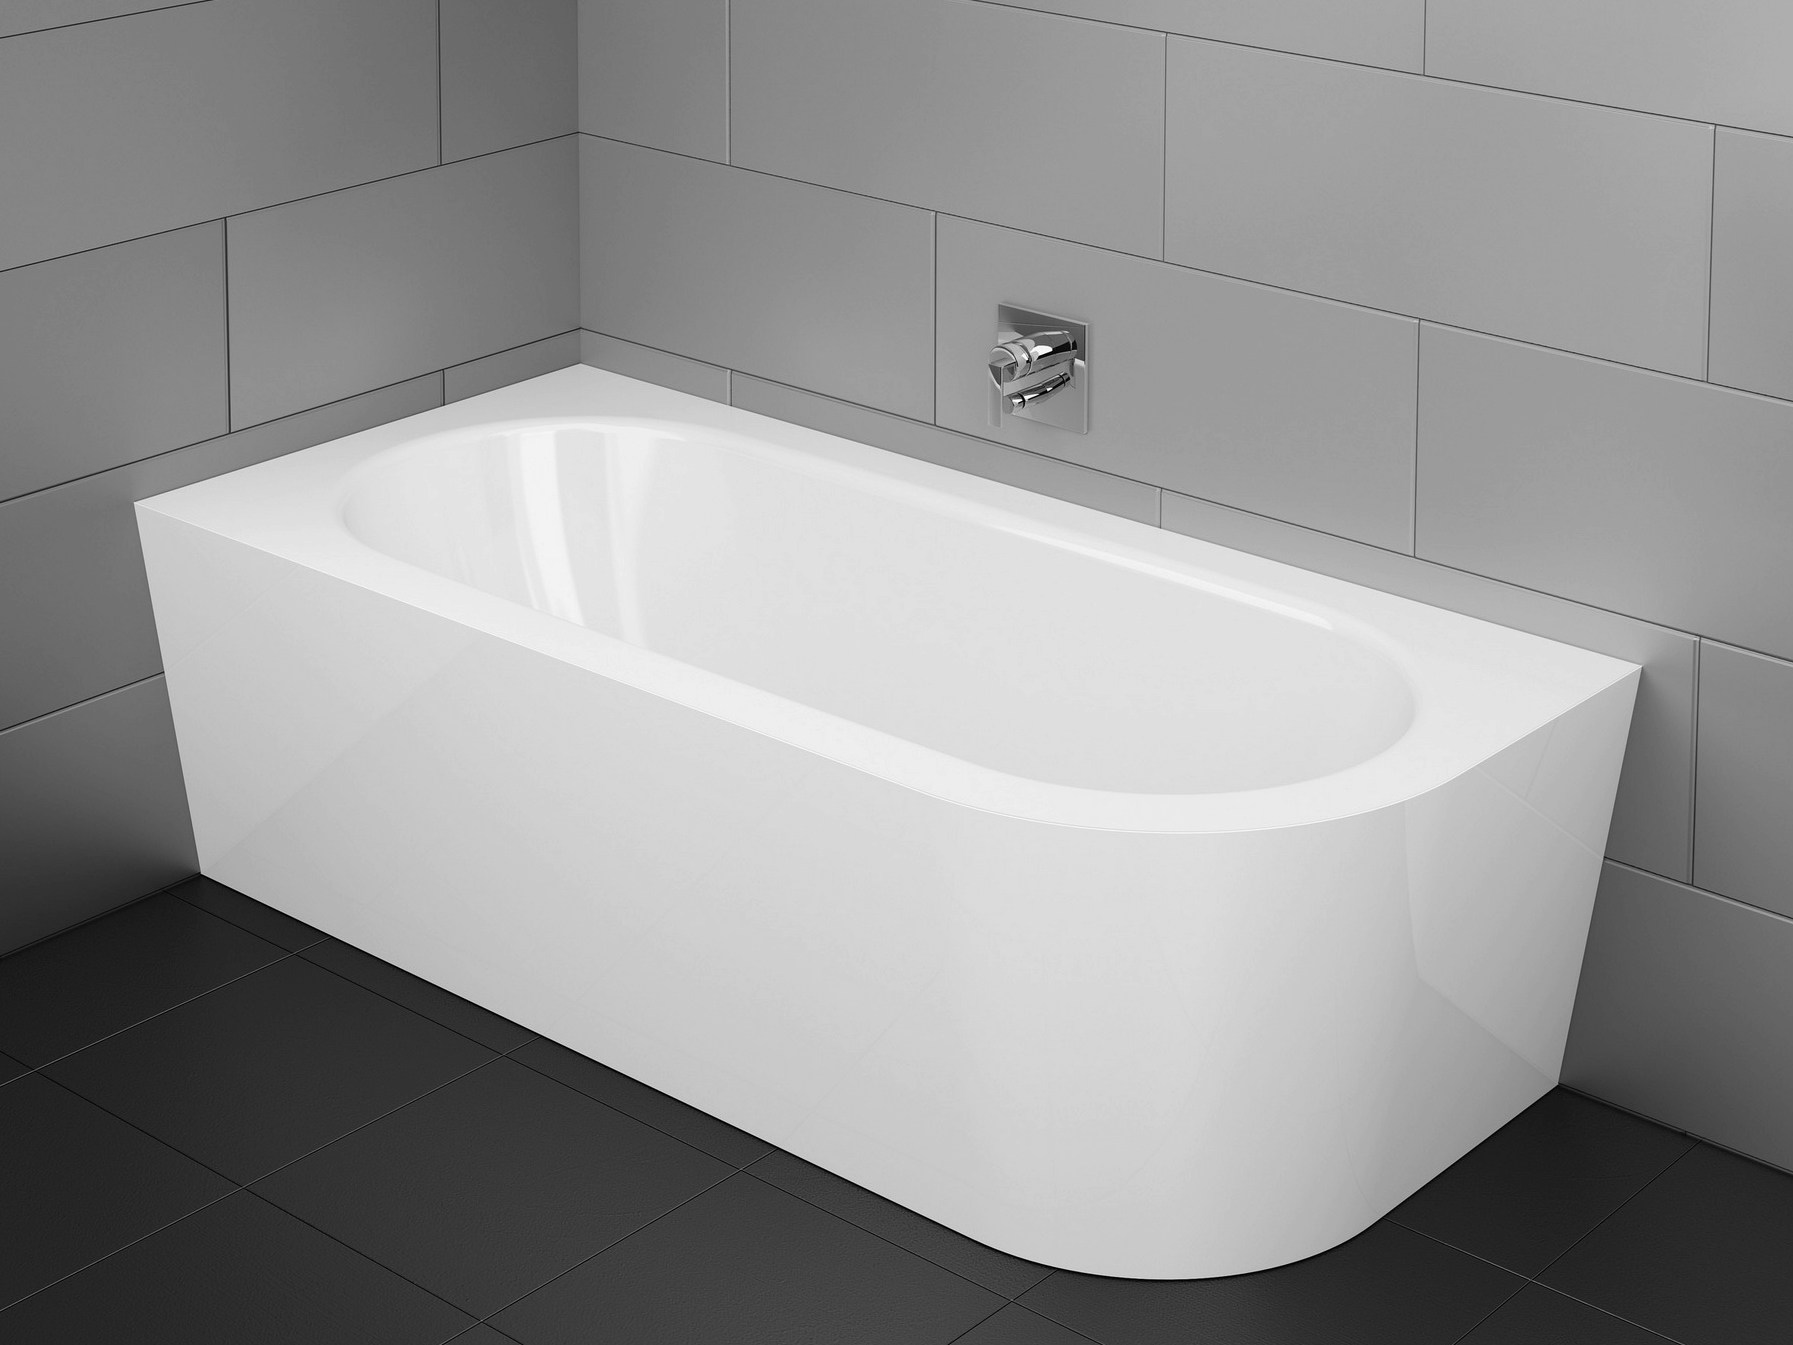 Vasca da bagno asimmetrica in acciaio smaltato BETTESTARLET IV SILHOUETTE by Bette design ...